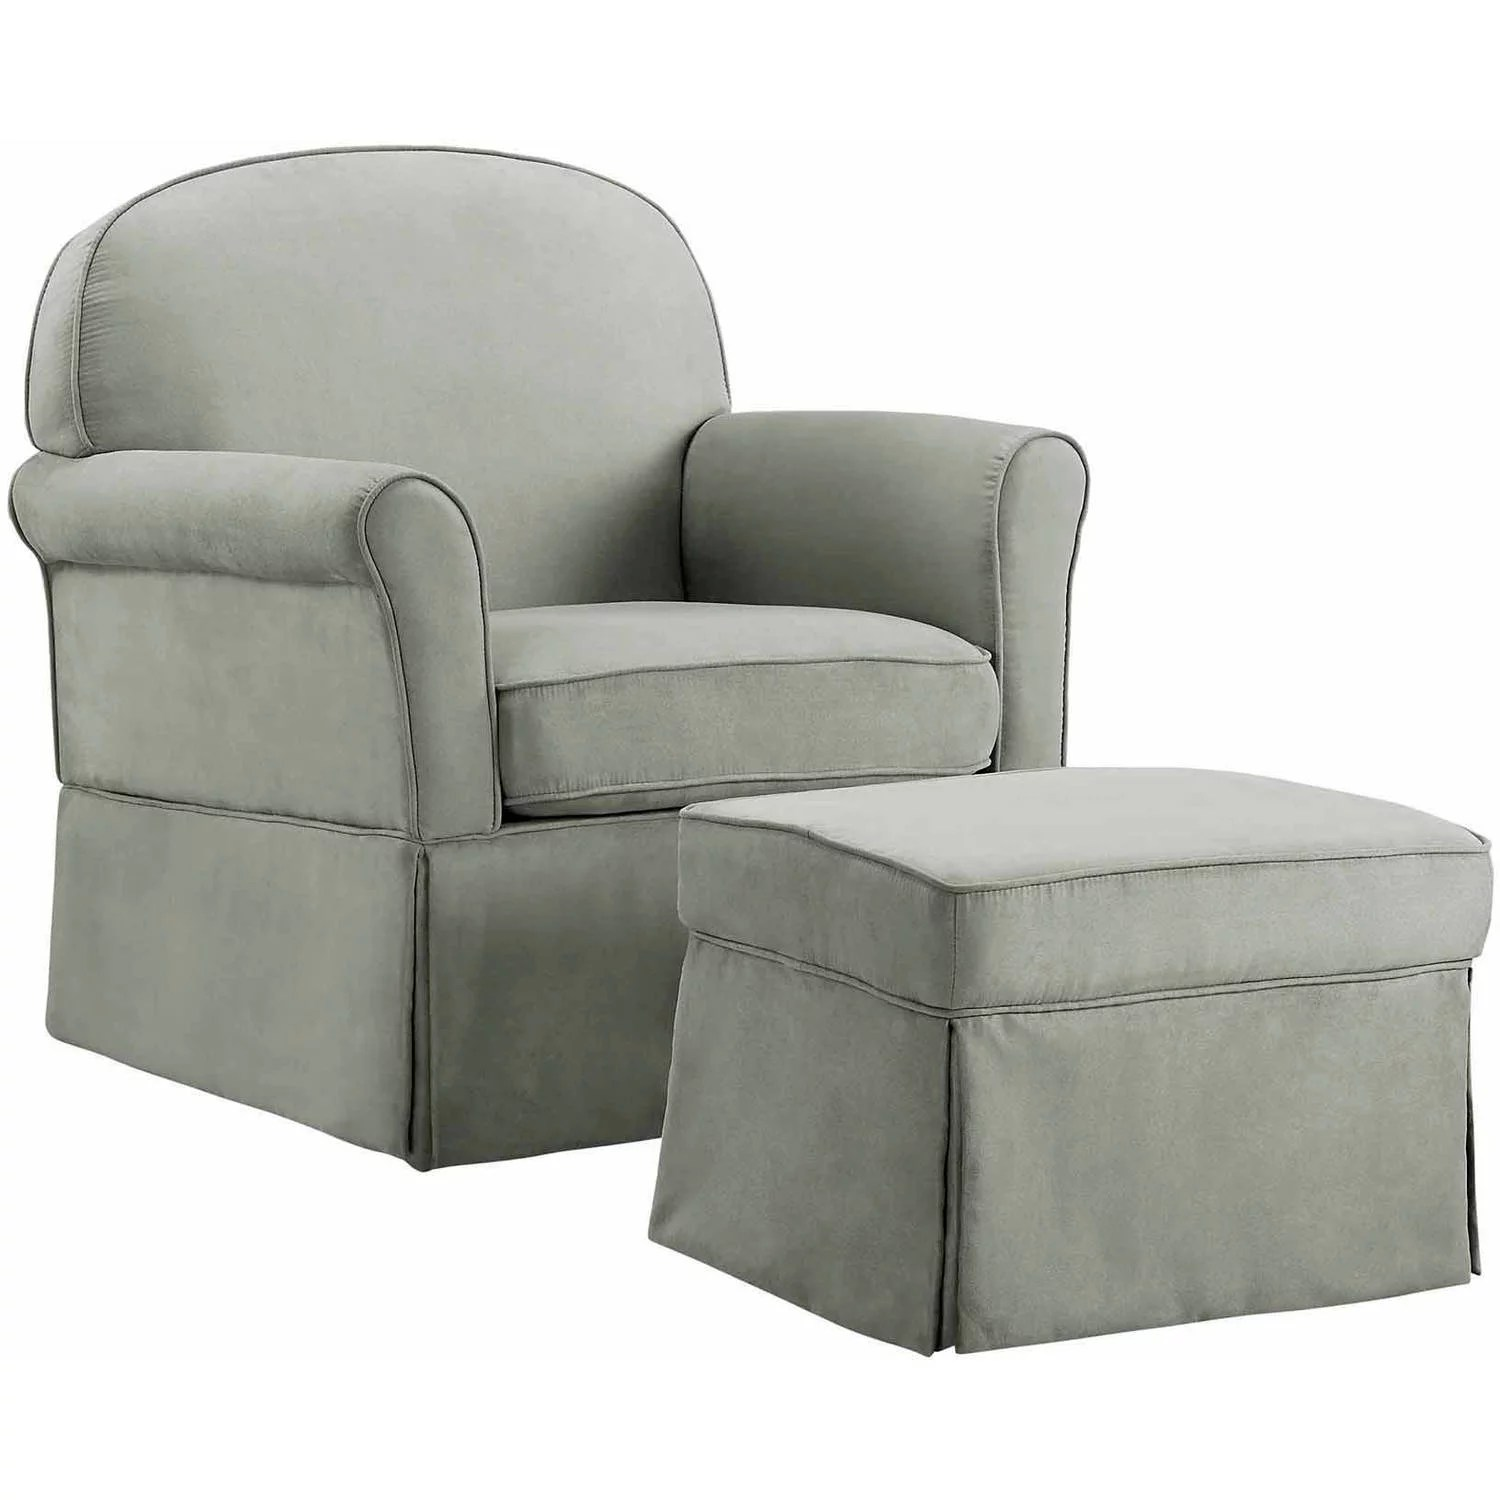 rocker glider chair rattan two chairs and table baby relax evan swivel ottoman gray walmart com